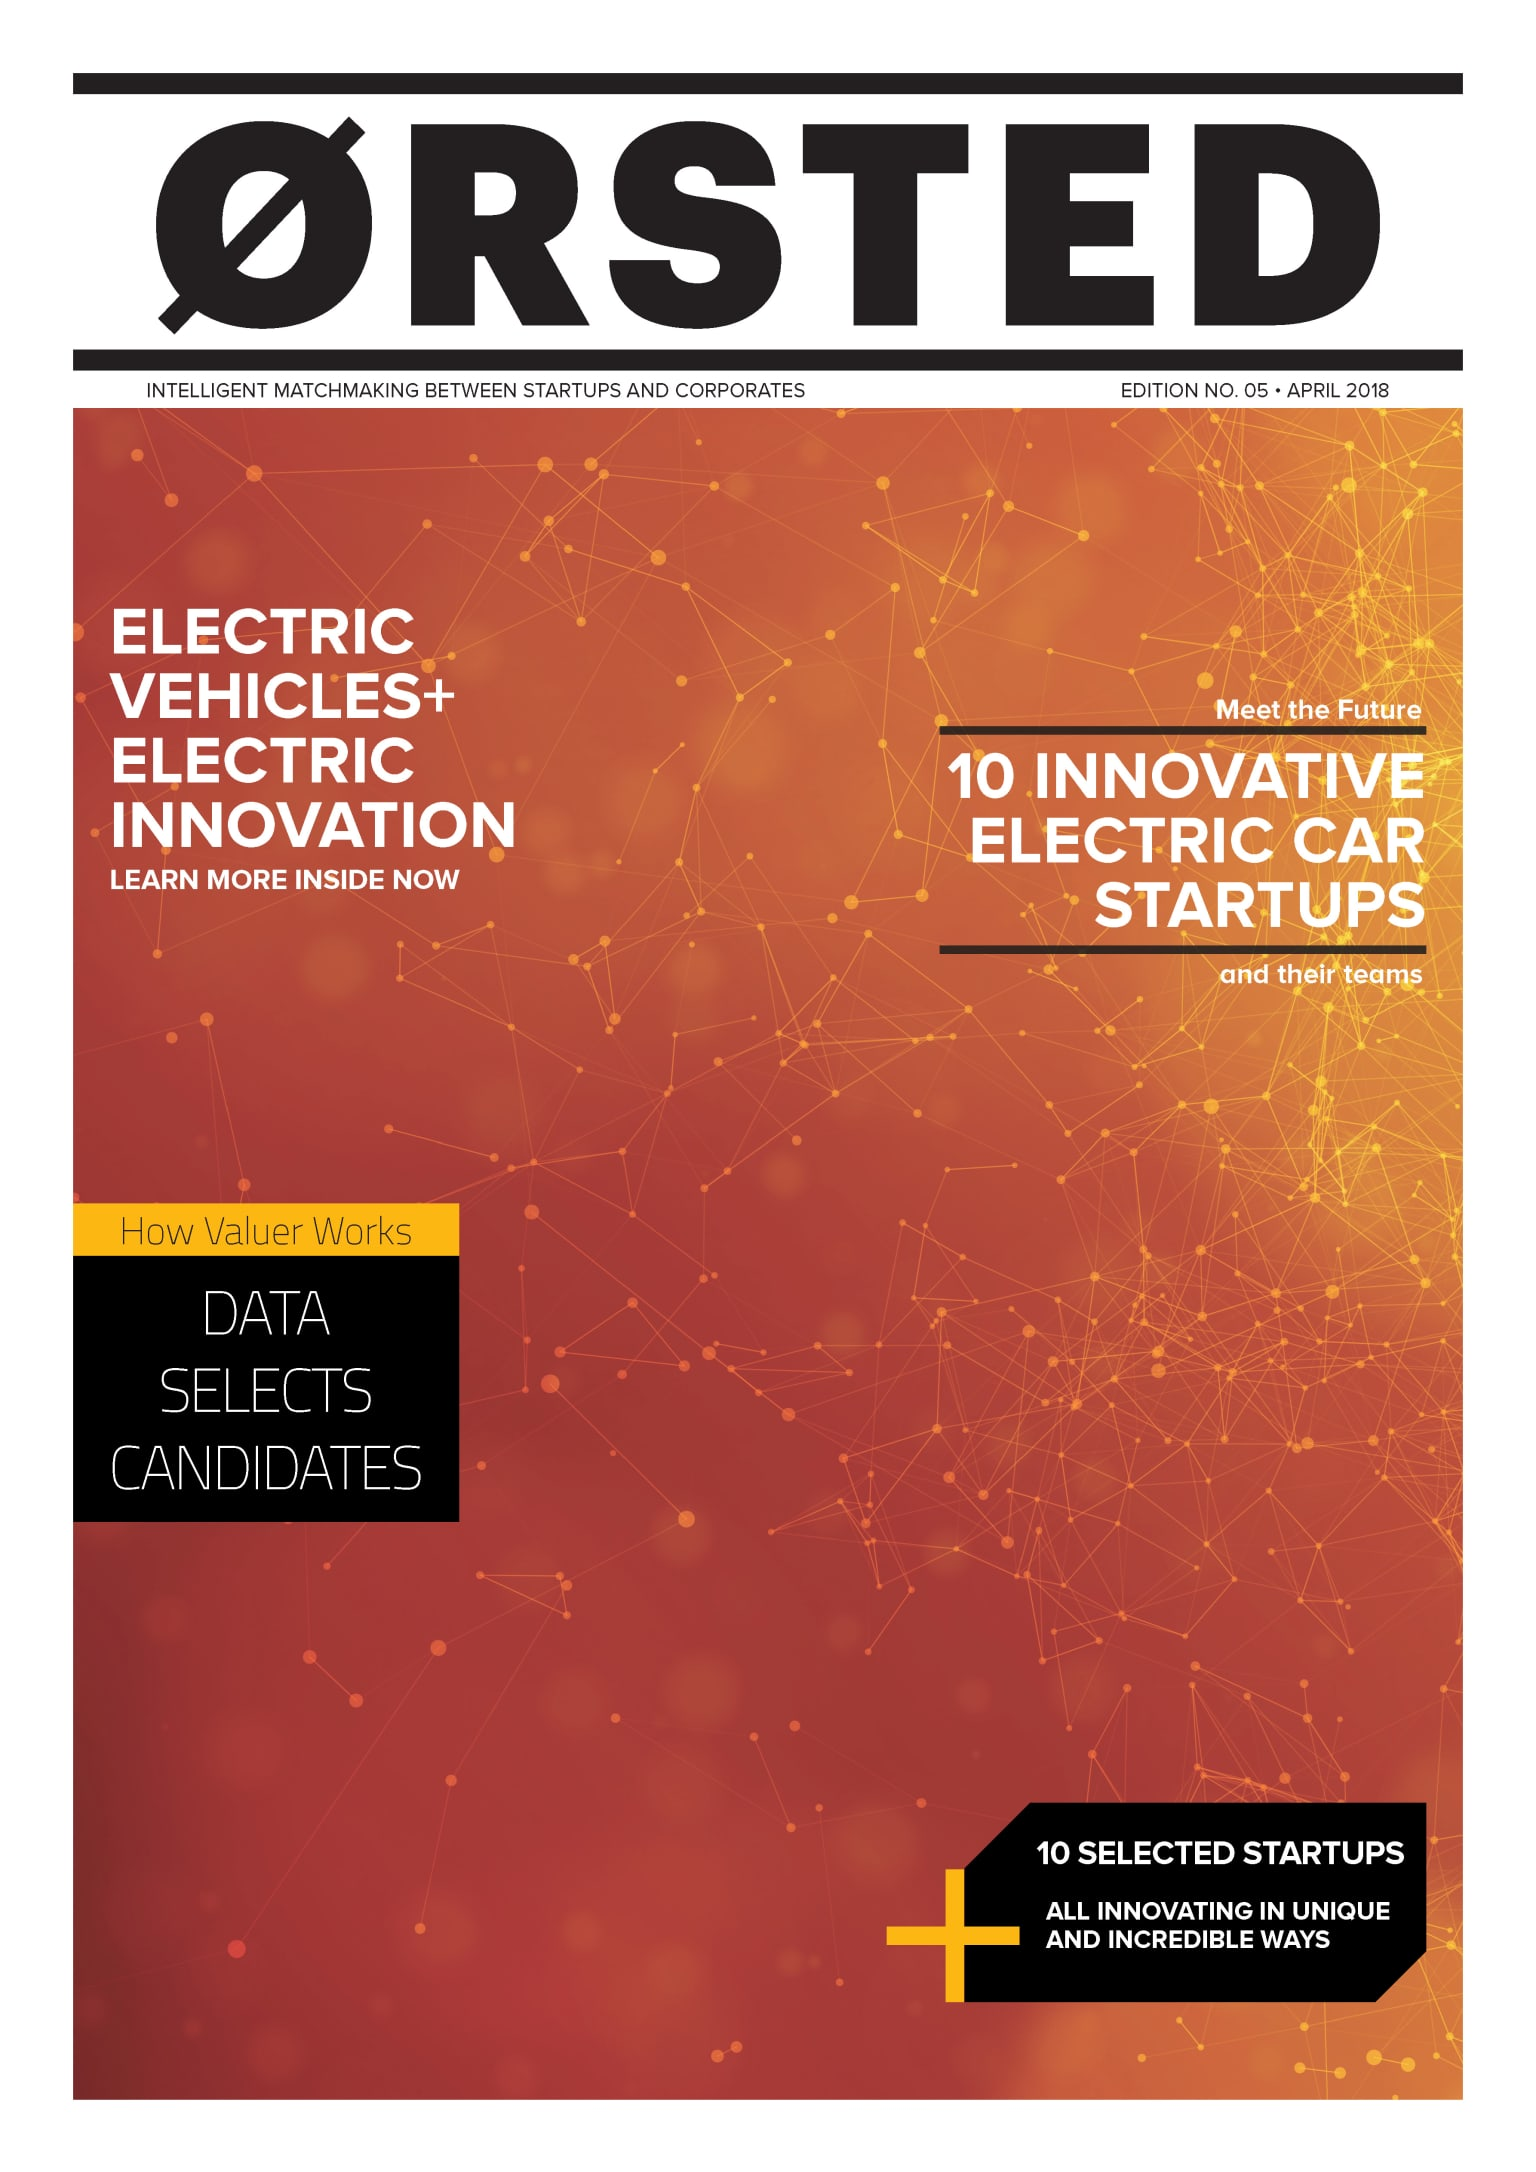 Ørsted Magazine - Showcasing Innovative Startups in Renewable Energy